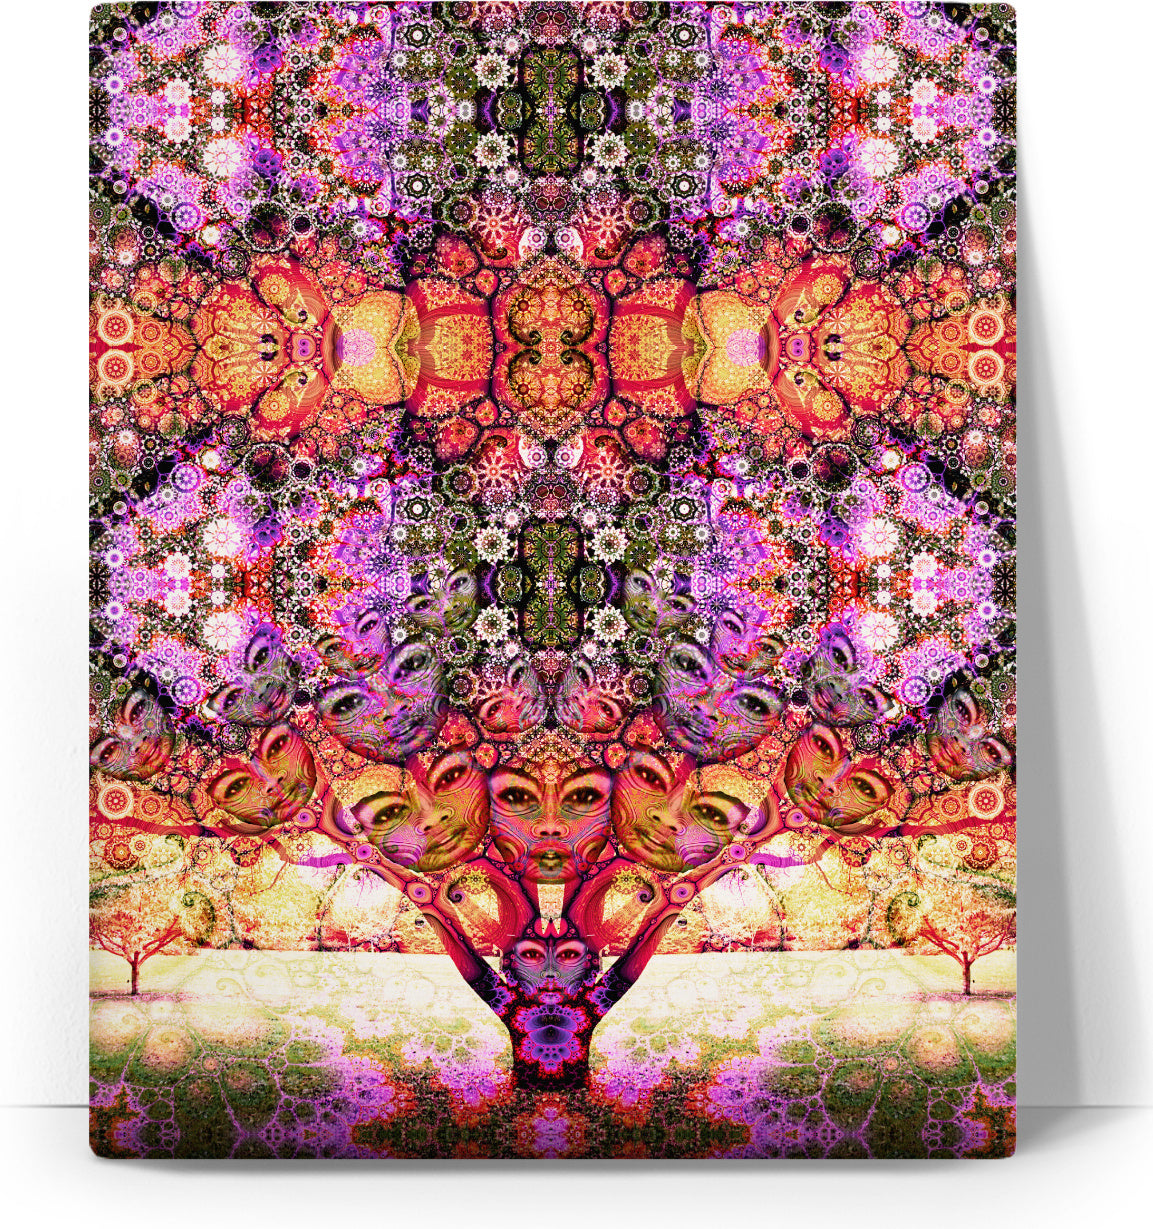 Goddess Tree - Canvas